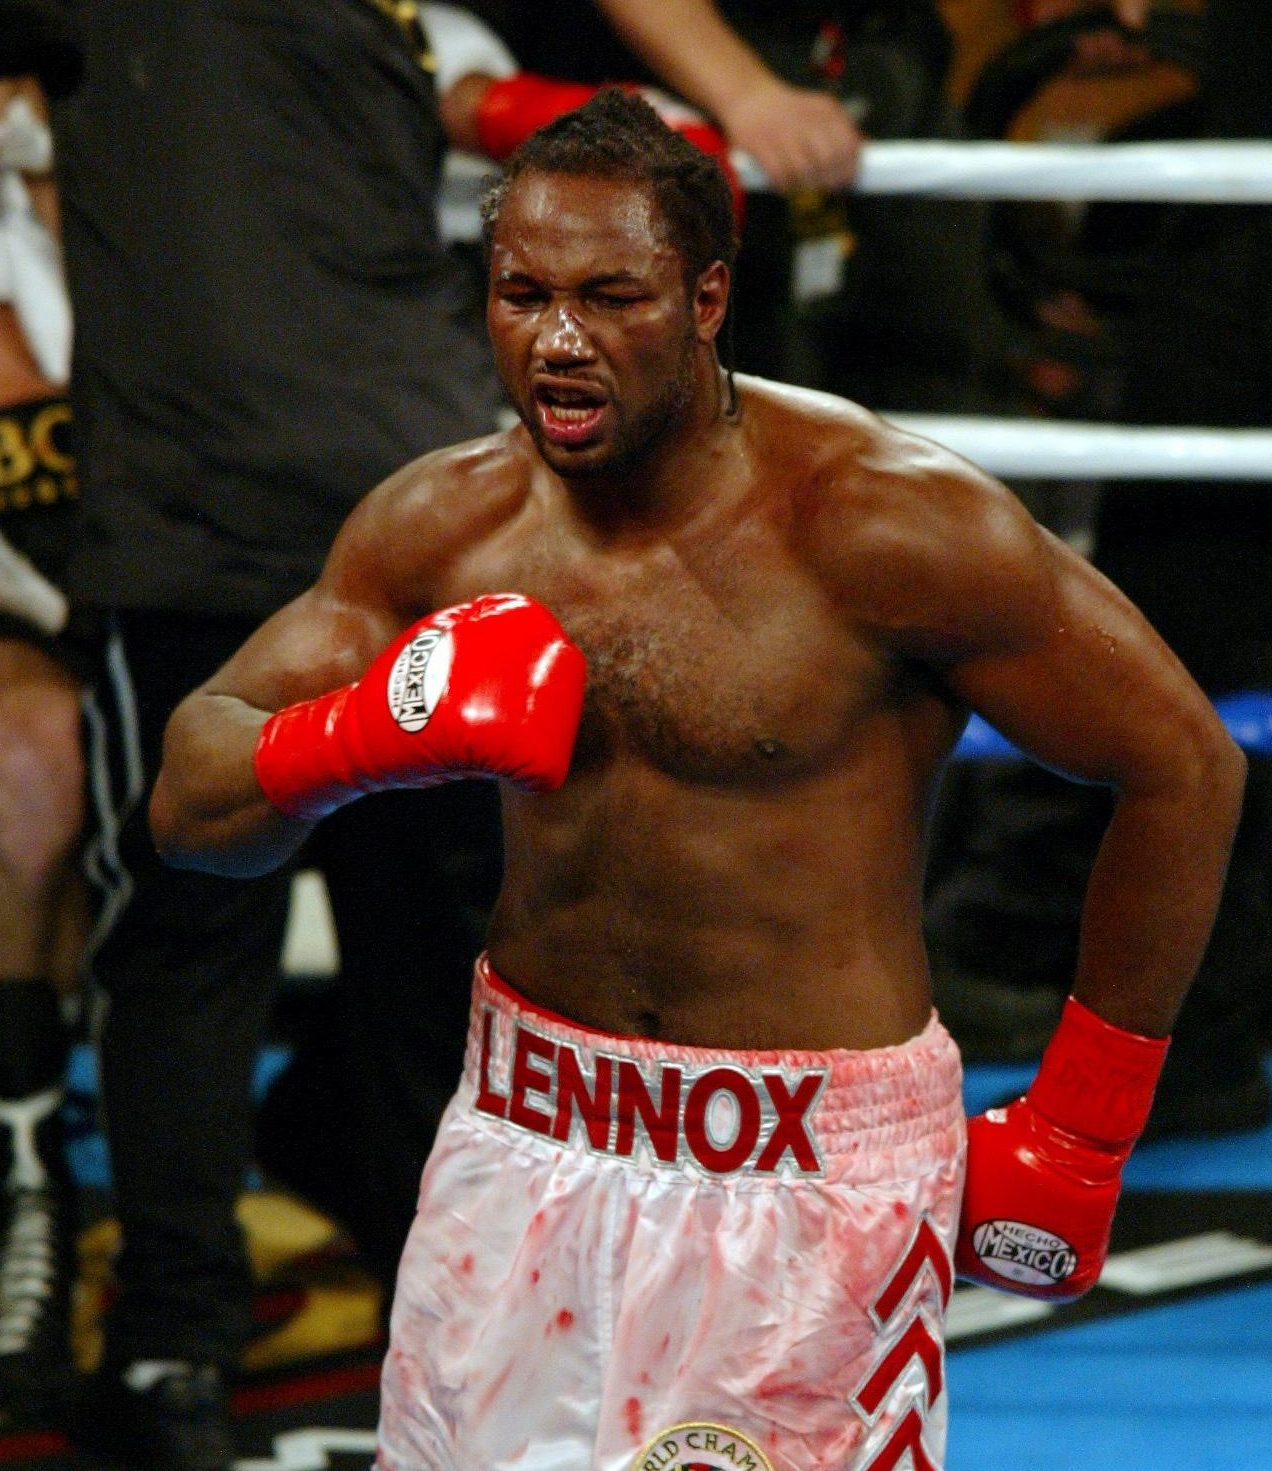 Lennox Lewis was the last man to be sole and undisputed world heavyweight champ